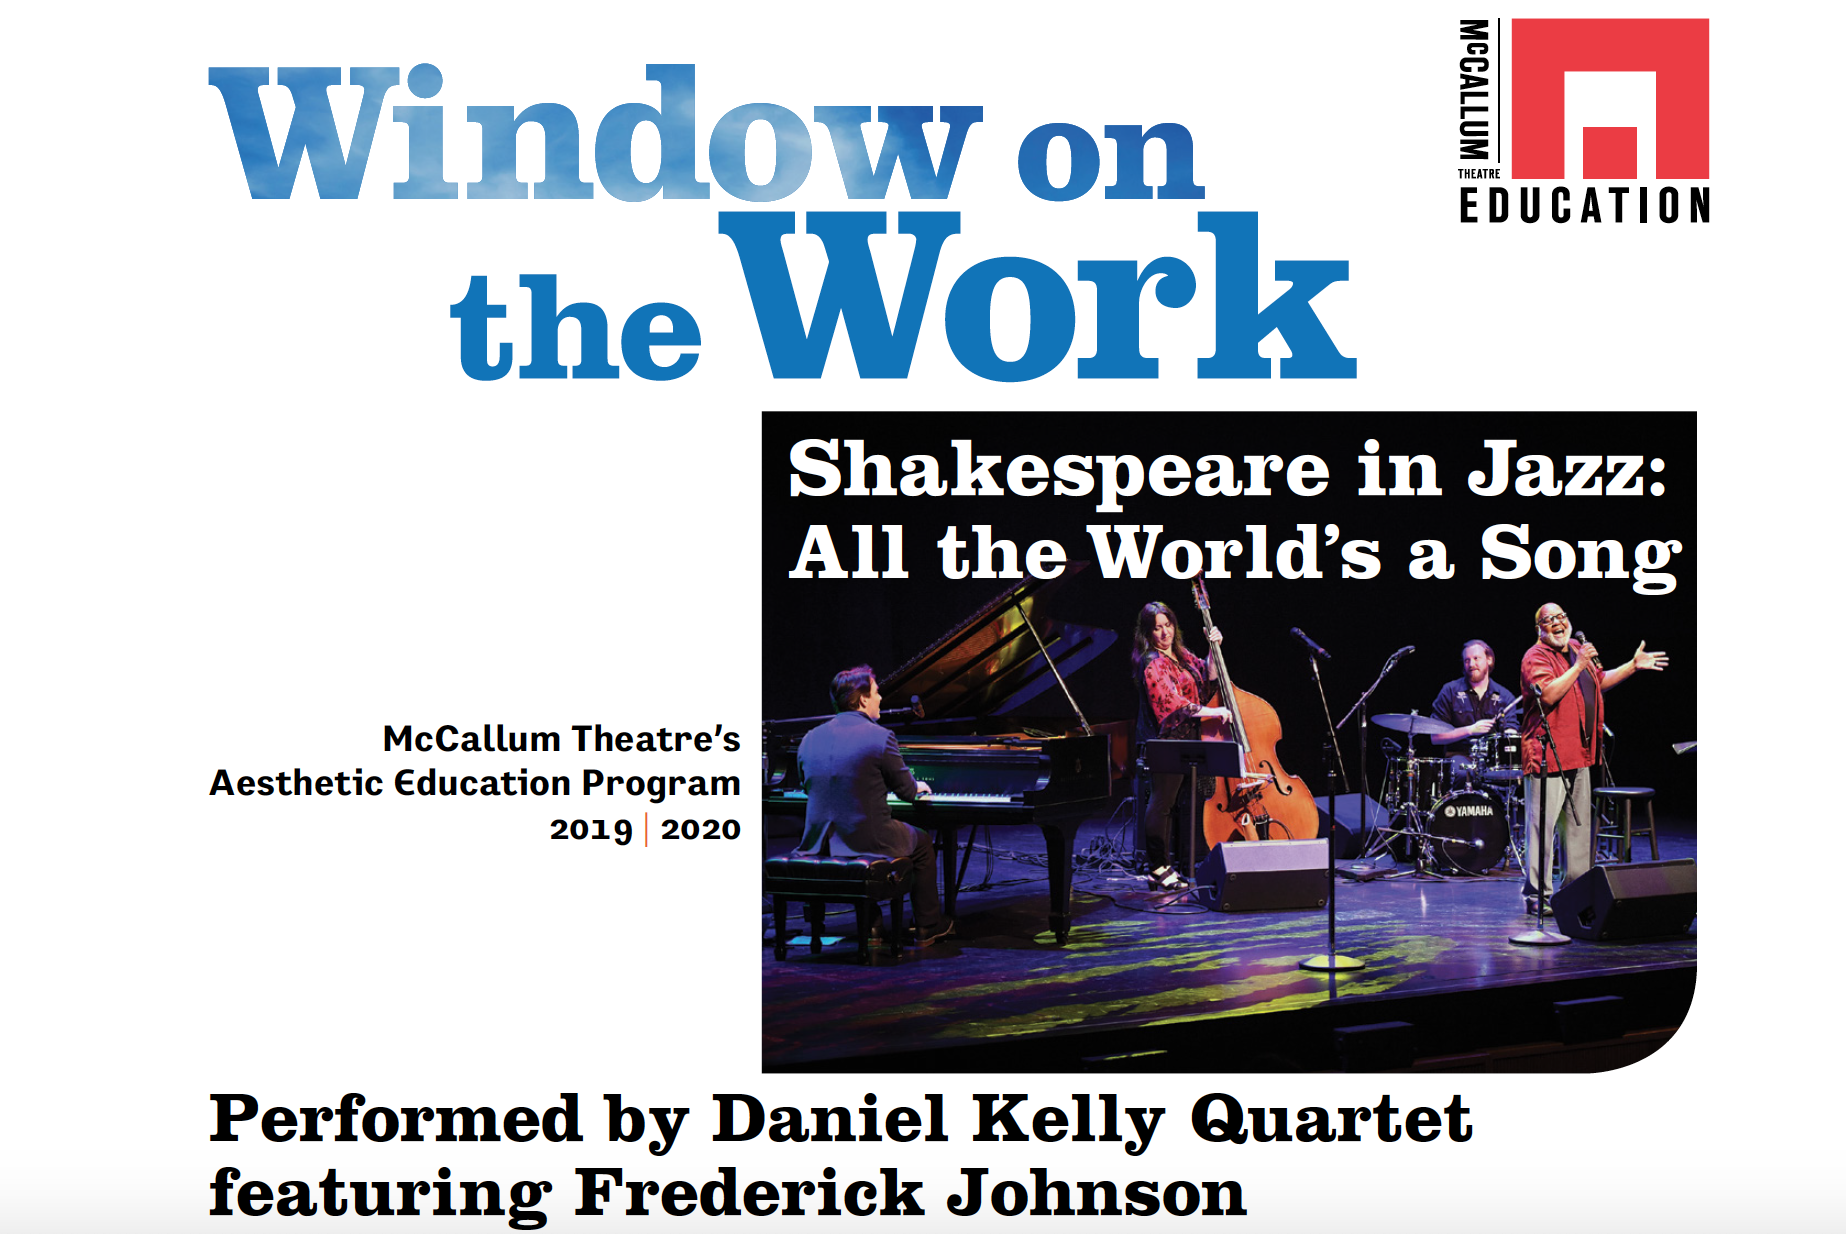 Window on the Work created by the McCallum Theatre's Aesthetic Education Program